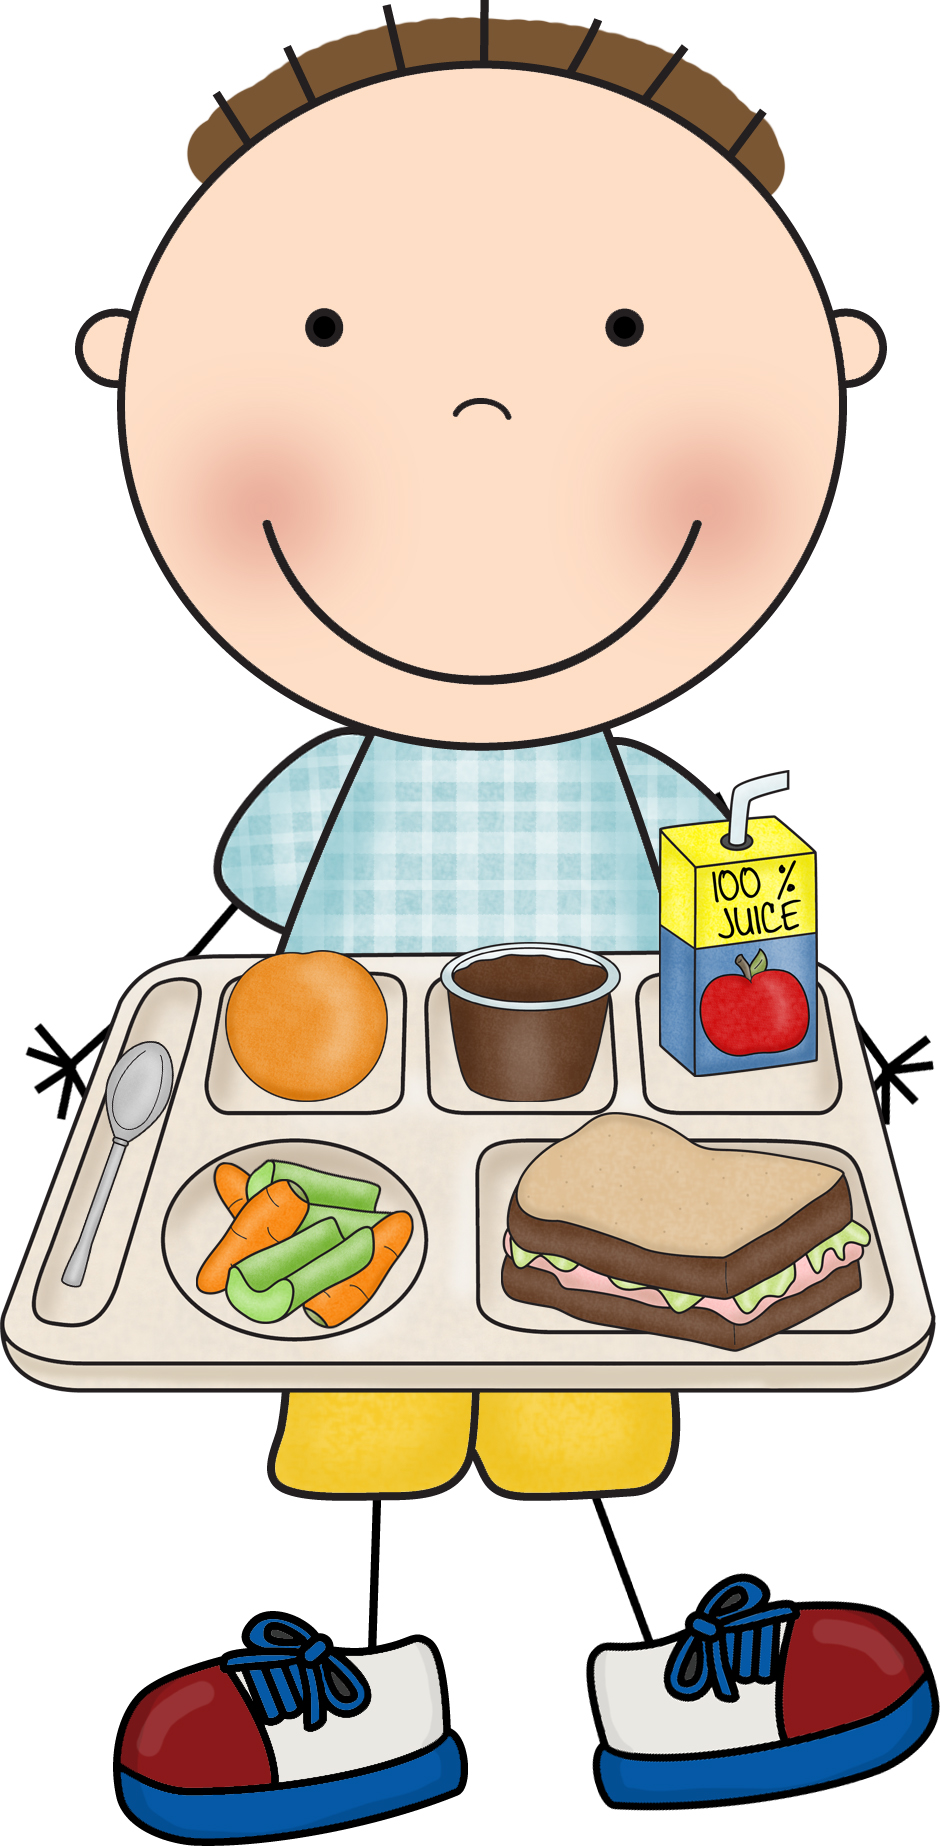 Lunch time download best. Free school cafeteria clipart